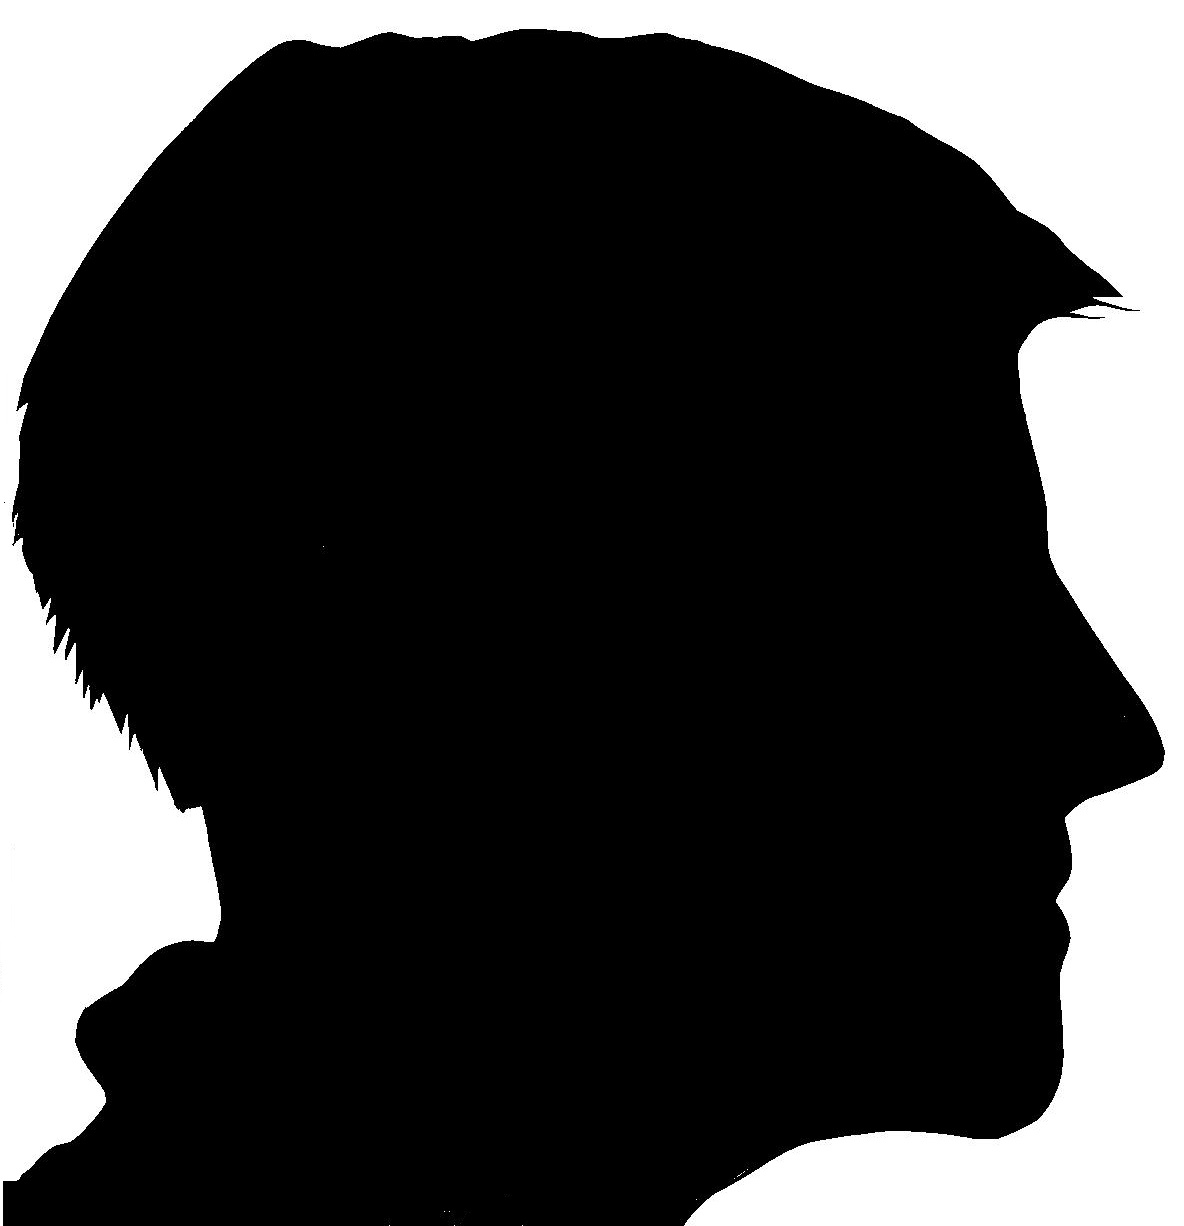 Human shadow clipart head protrait.